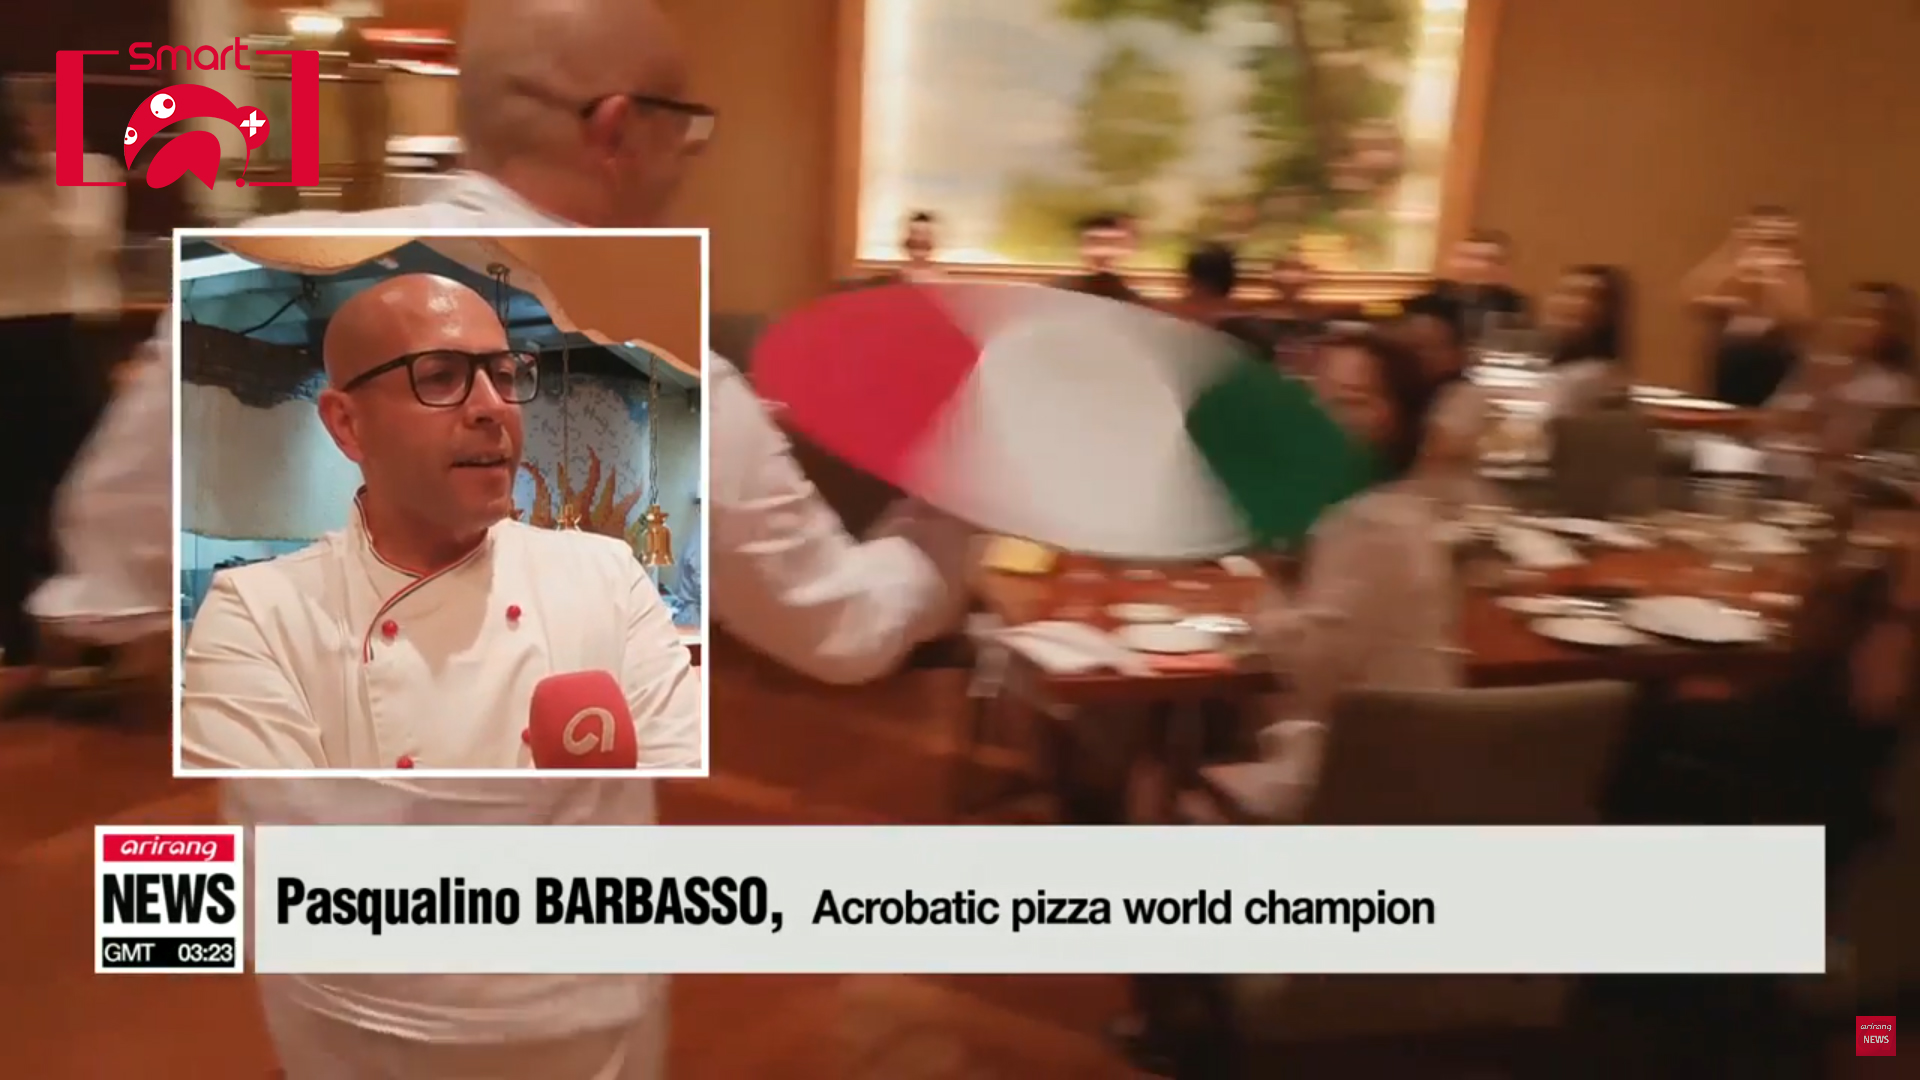 [Smart A+] Acrobatic pizza world champion Pasqualino Barbasso shows off his stunning skills